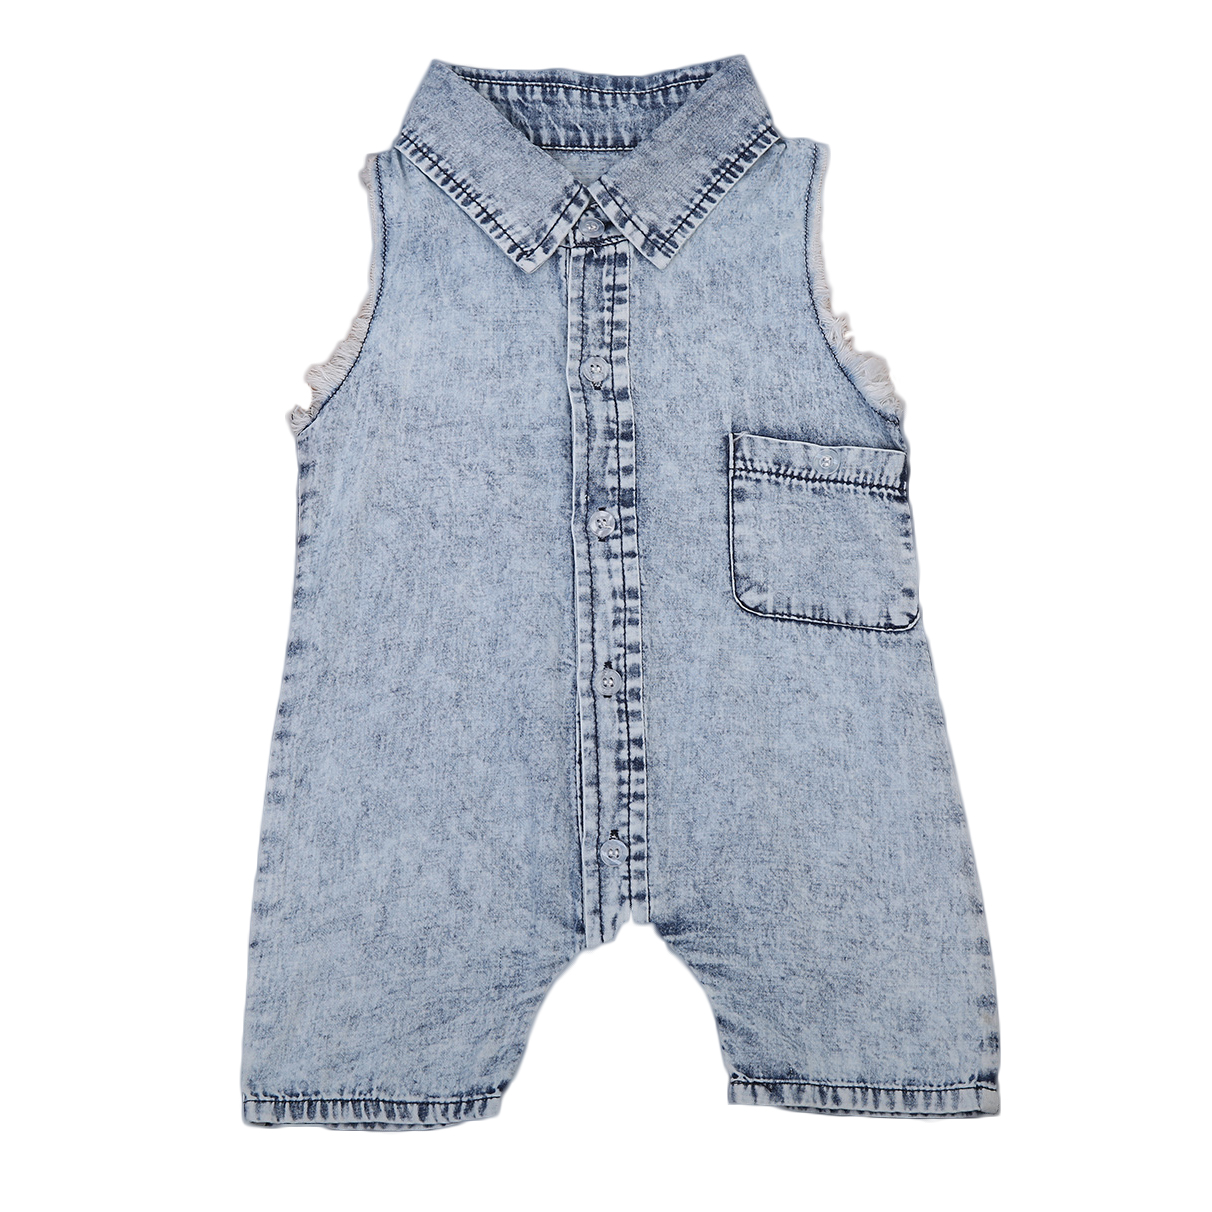 Newborn Baby Boys Kids Sleeveless Denim Romper Jumpsuit Playsuit Toddler Summer Clothes One-Pieces Outfits 2017 cotton toddler kids girls clothes sleeveless floral romper baby girl rompers playsuit one pieces outfit kids tracksuit